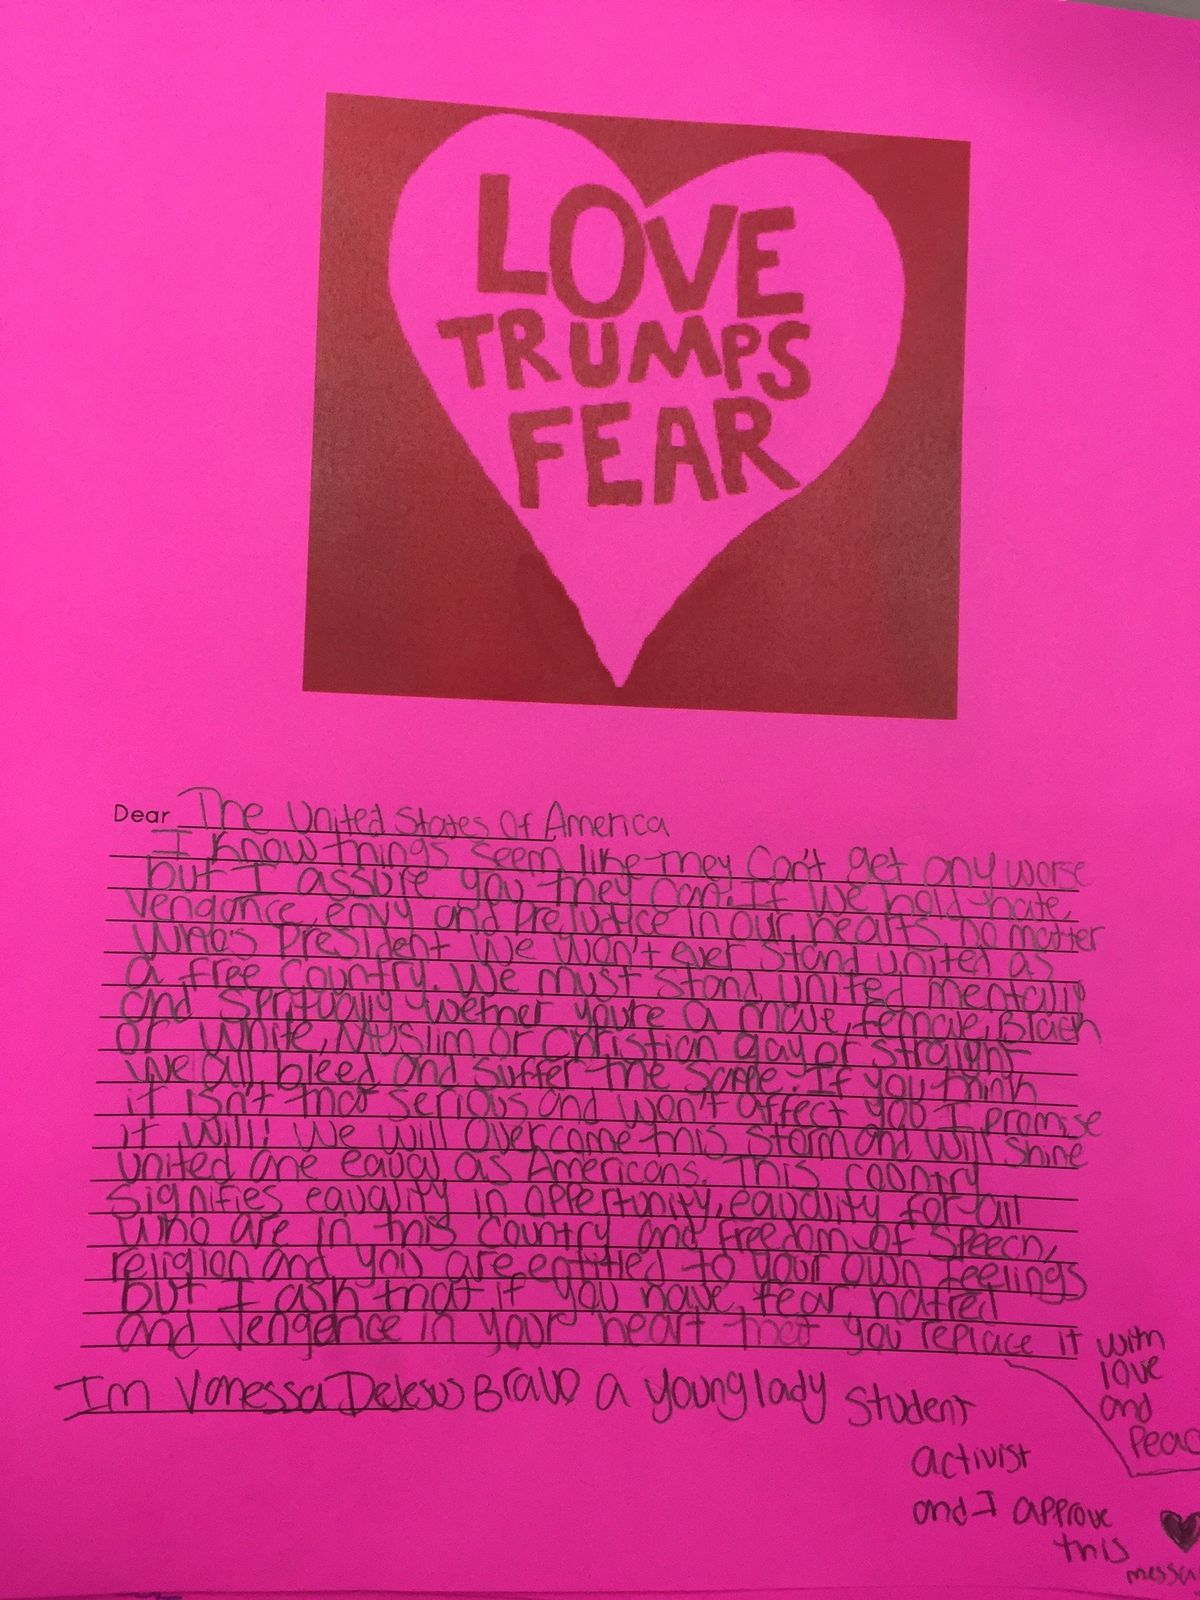 One of the letters written by Camiscoli's students.